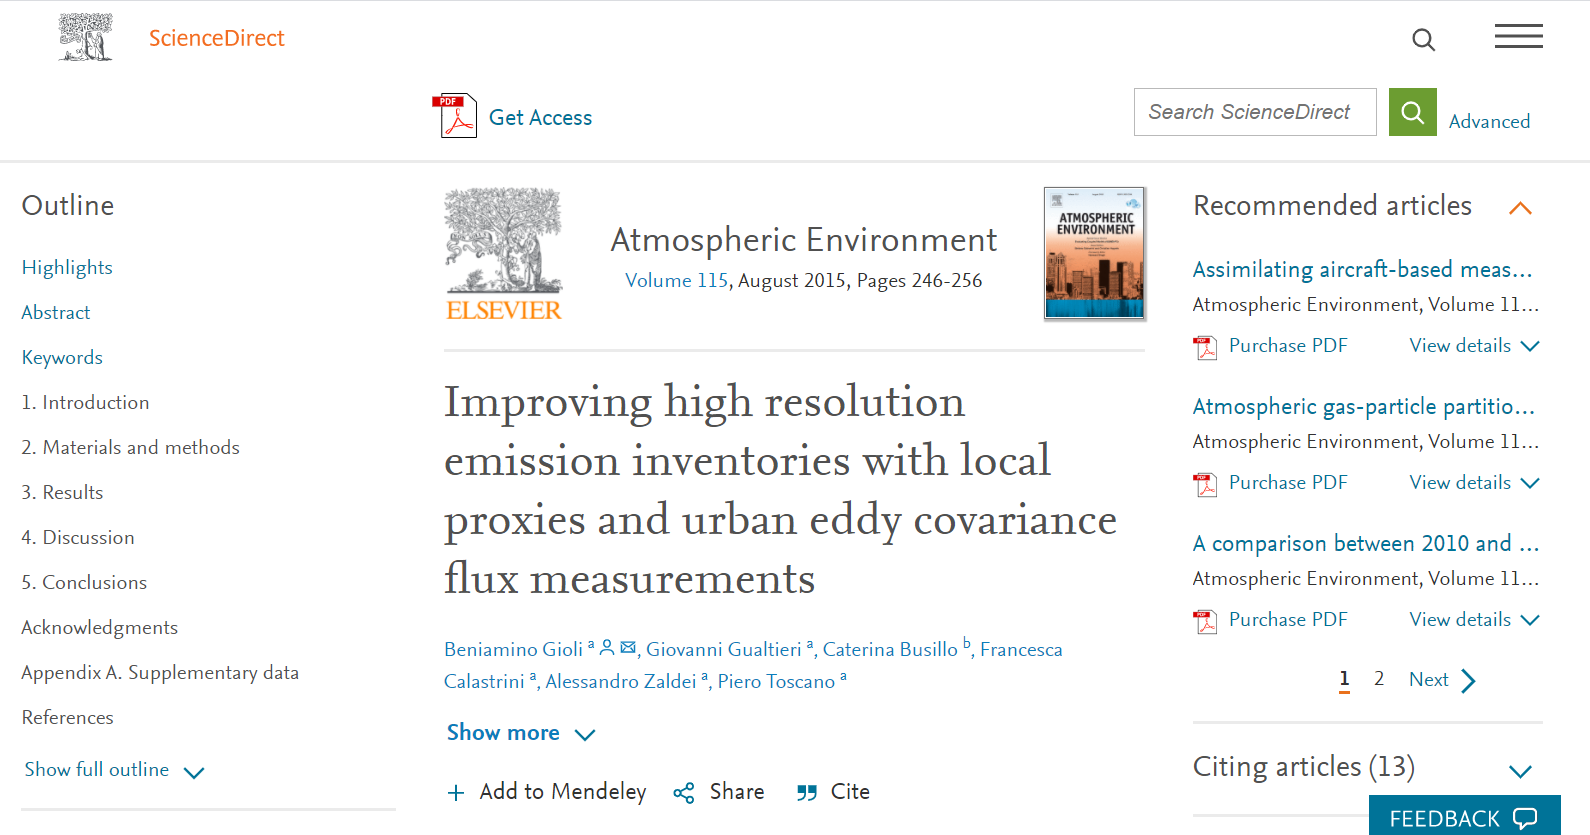 Improving high resolution emission inventories with local proxies and urban eddy covariance flux measurements